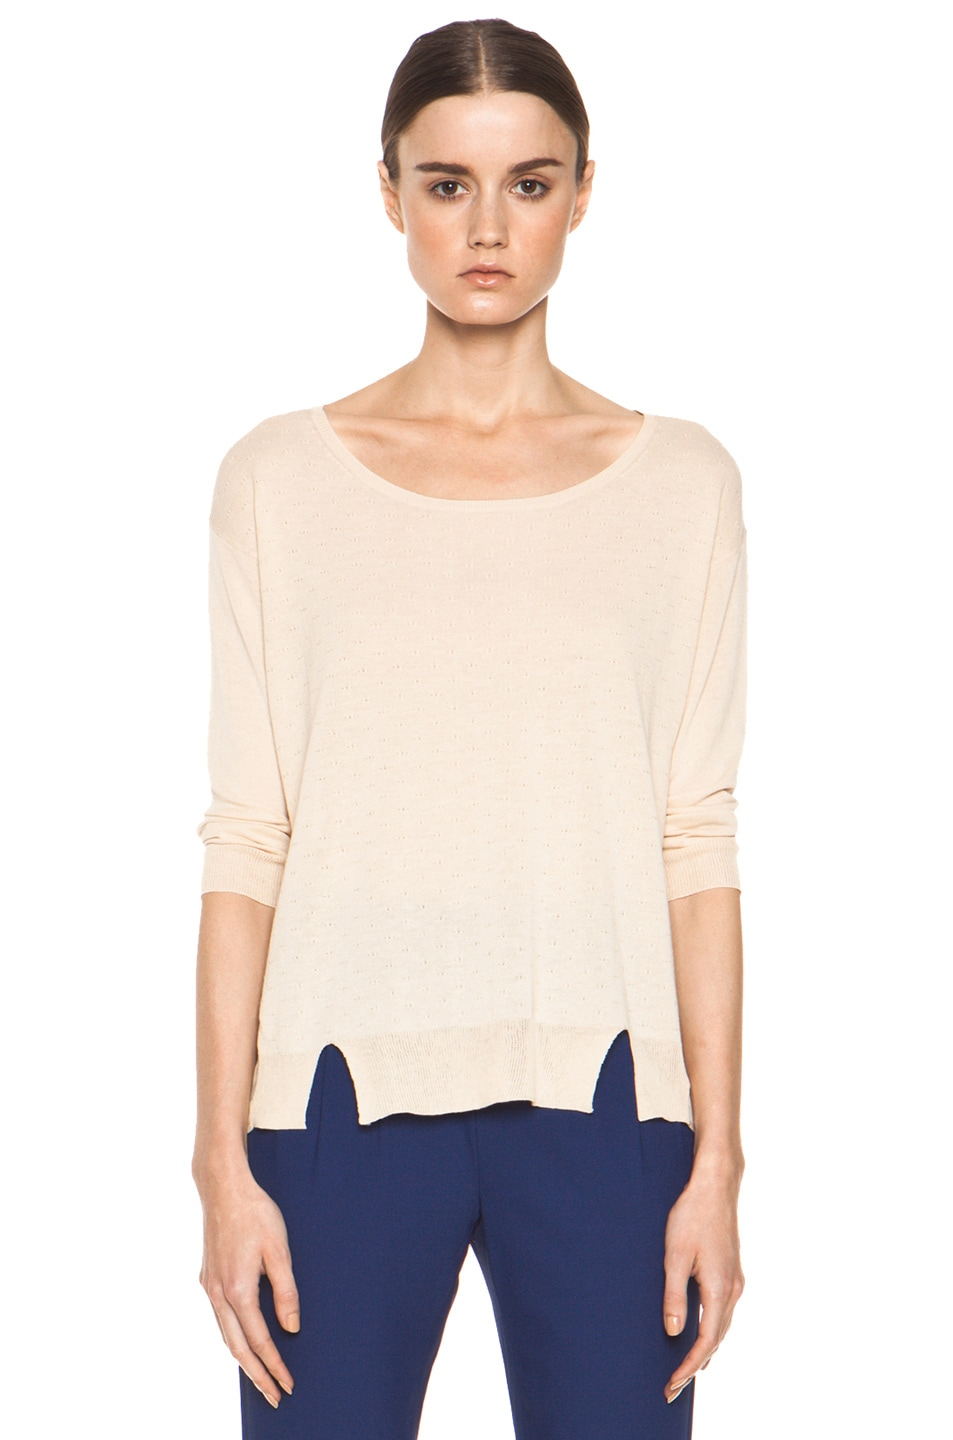 Image 1 of Girl. by Band of Outsiders Malibu Basic Sweater in Nude